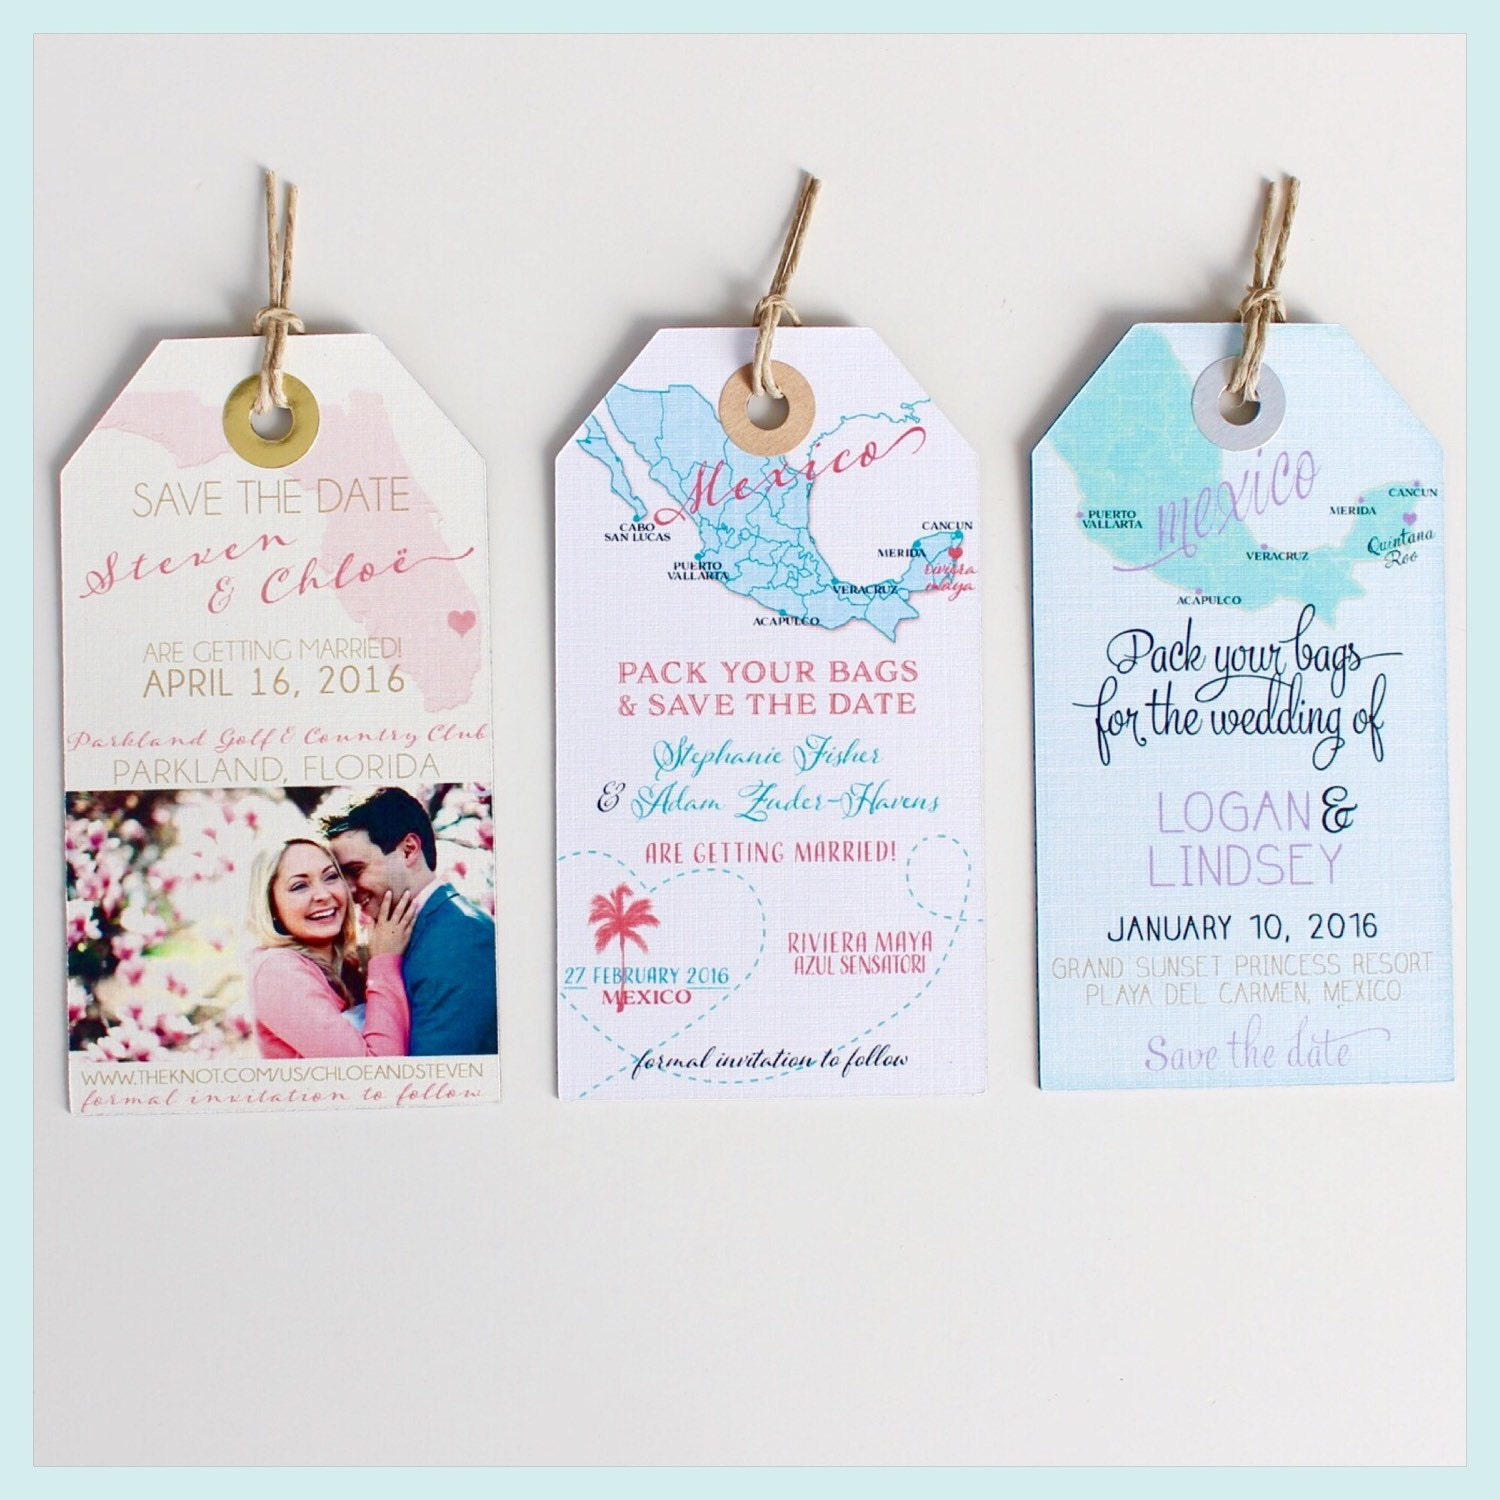 Wedding Invitation Magnet Sample. Save The Date Luggage Tags